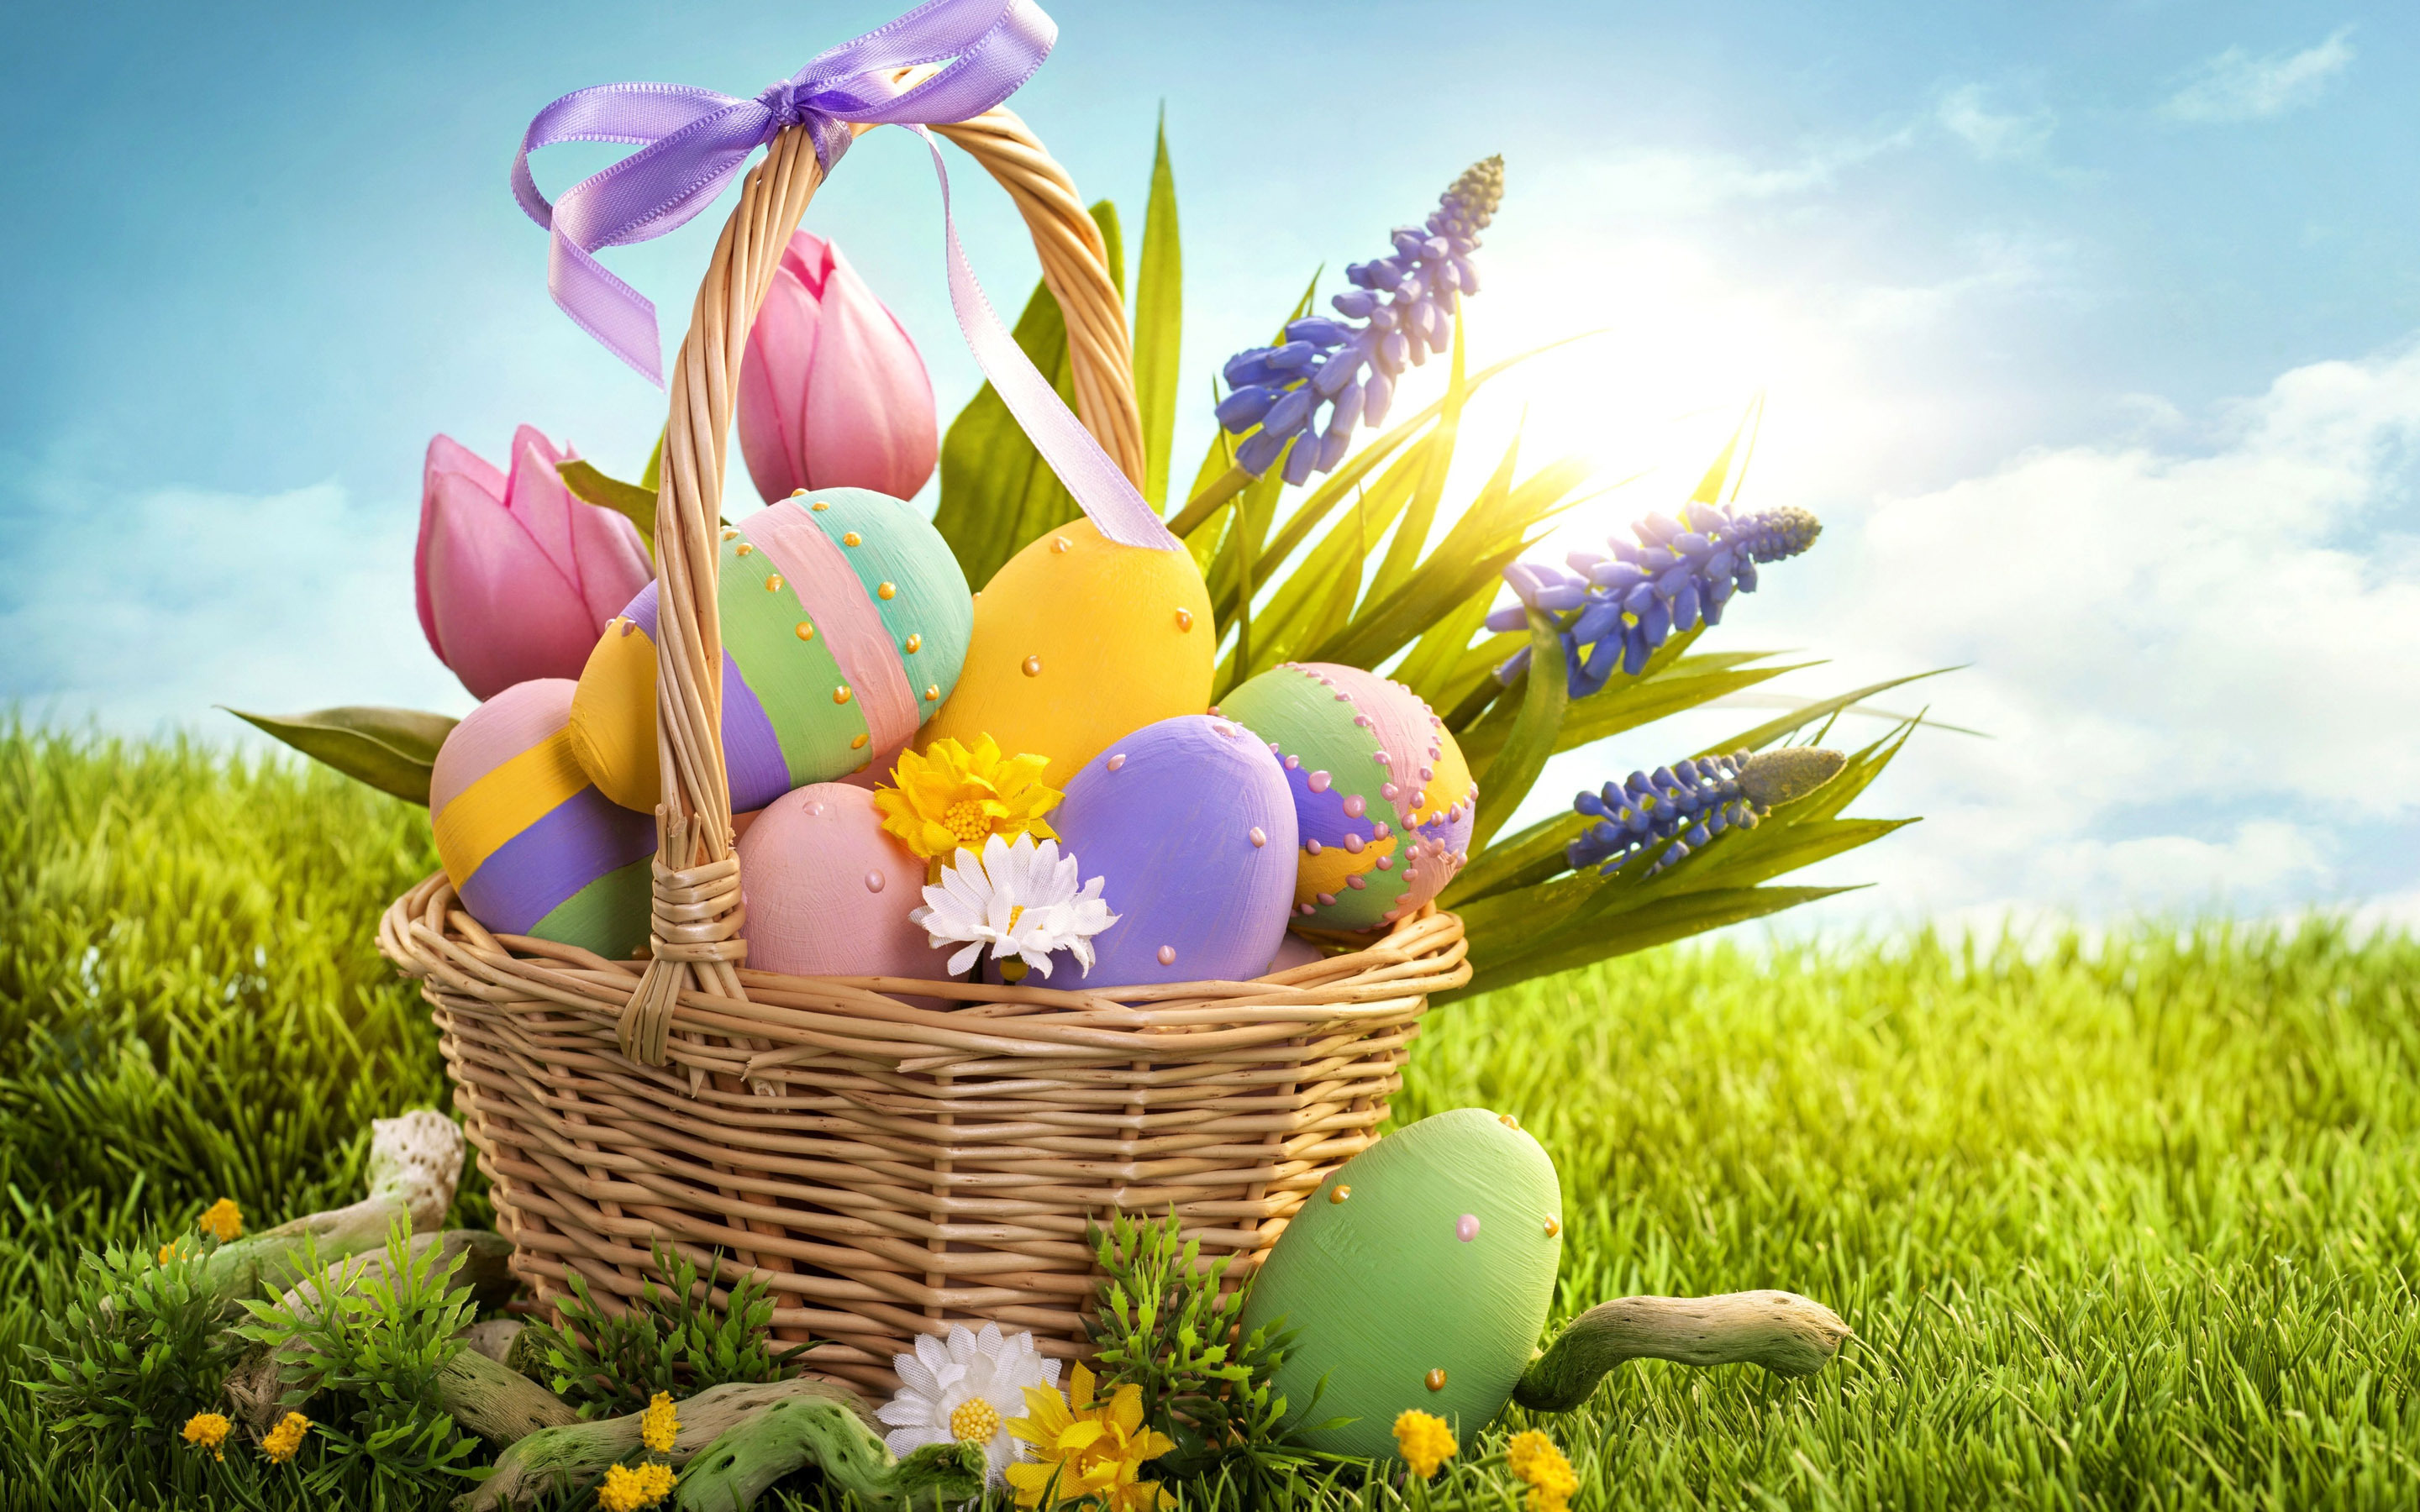 Easter Screensavers HD 21569 2560x1600 px